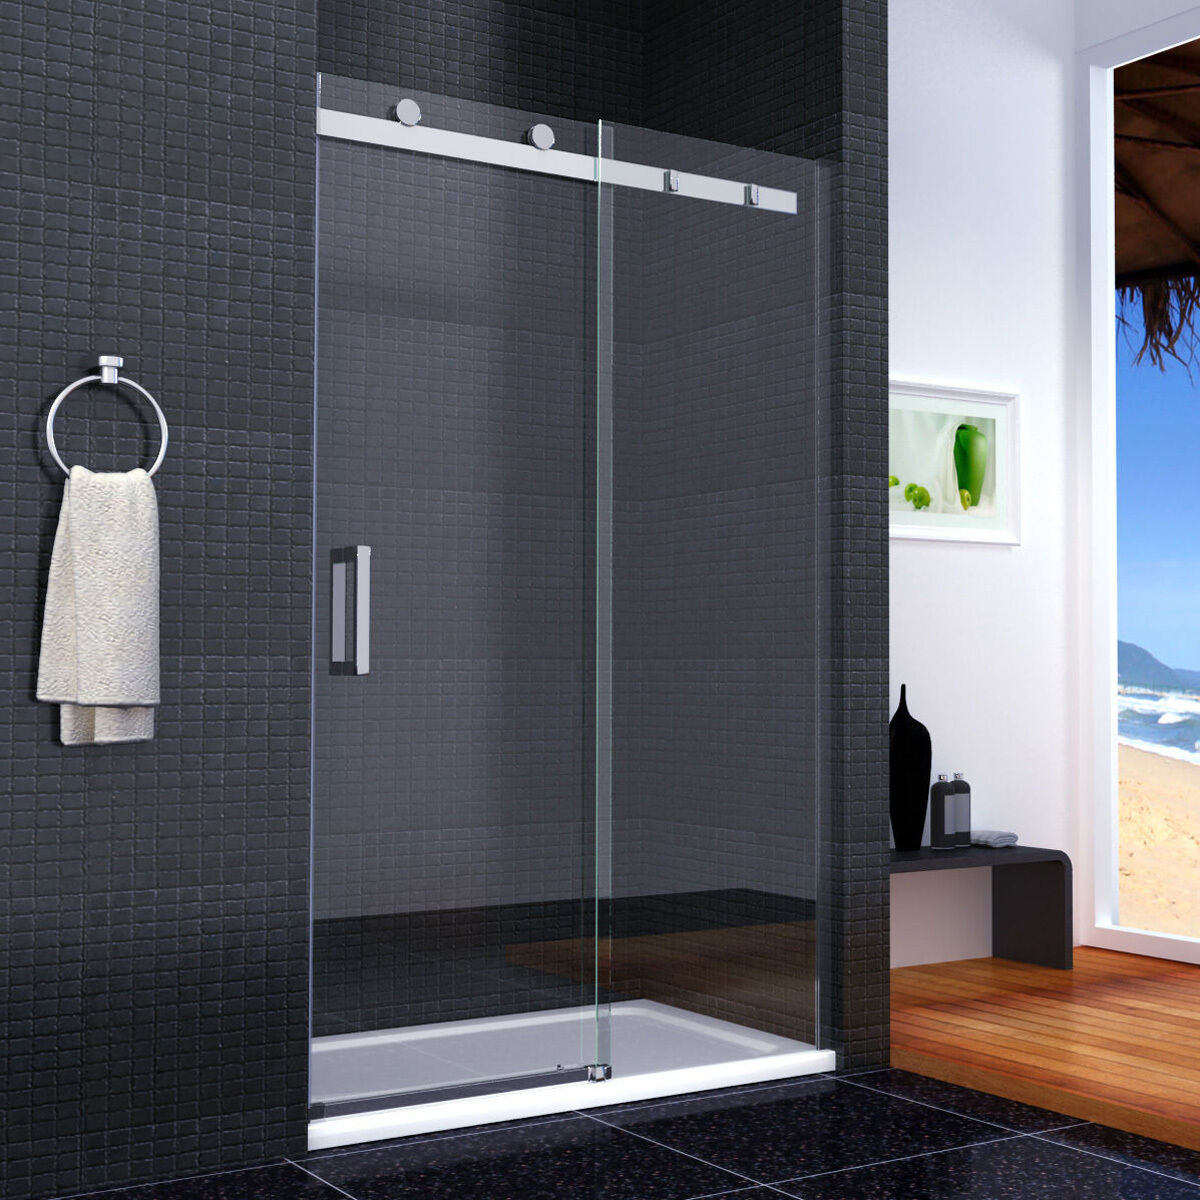 duschabtrennung duschwand walkin dusche 8mm glas schiebet r nischent r 120x195cm eur 353 99. Black Bedroom Furniture Sets. Home Design Ideas